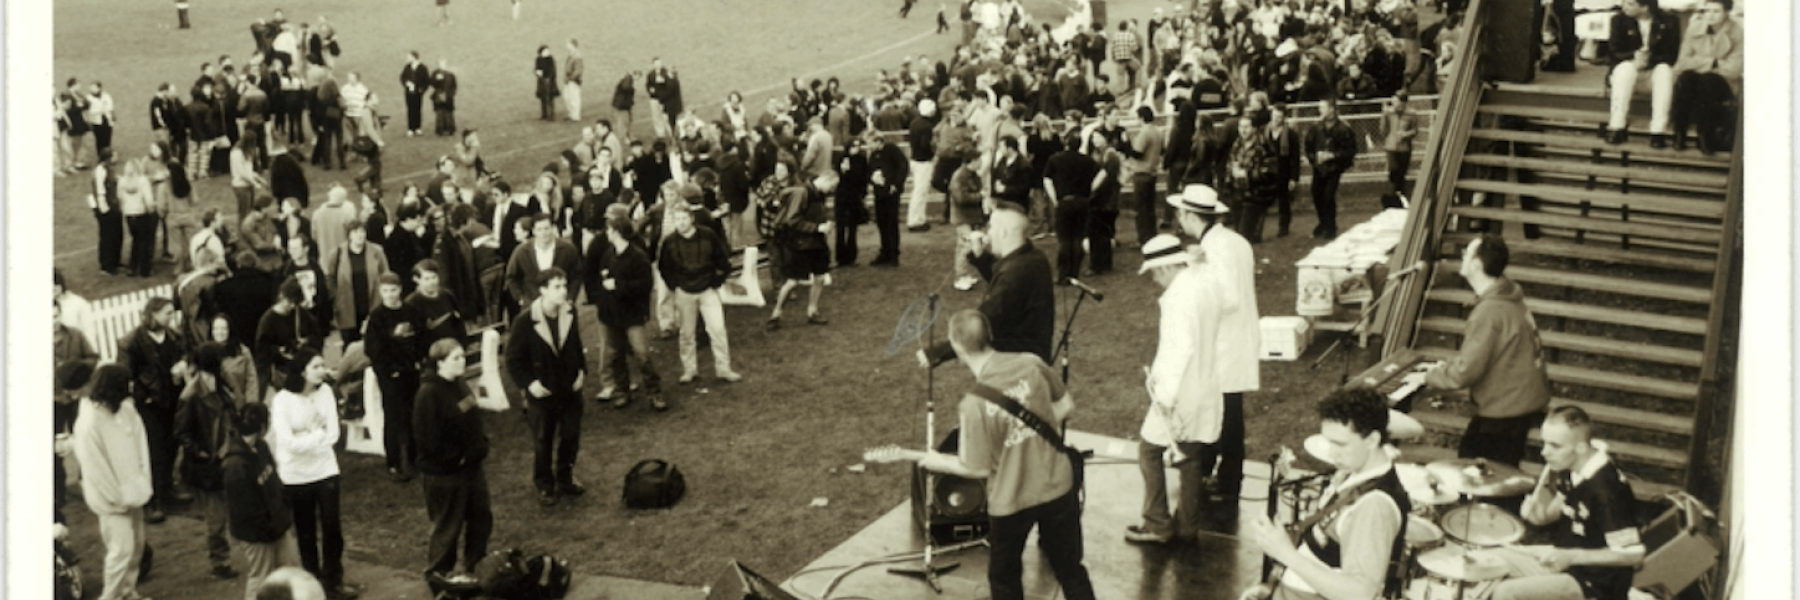 Community Cup, Elsternwick Park, late 1990s